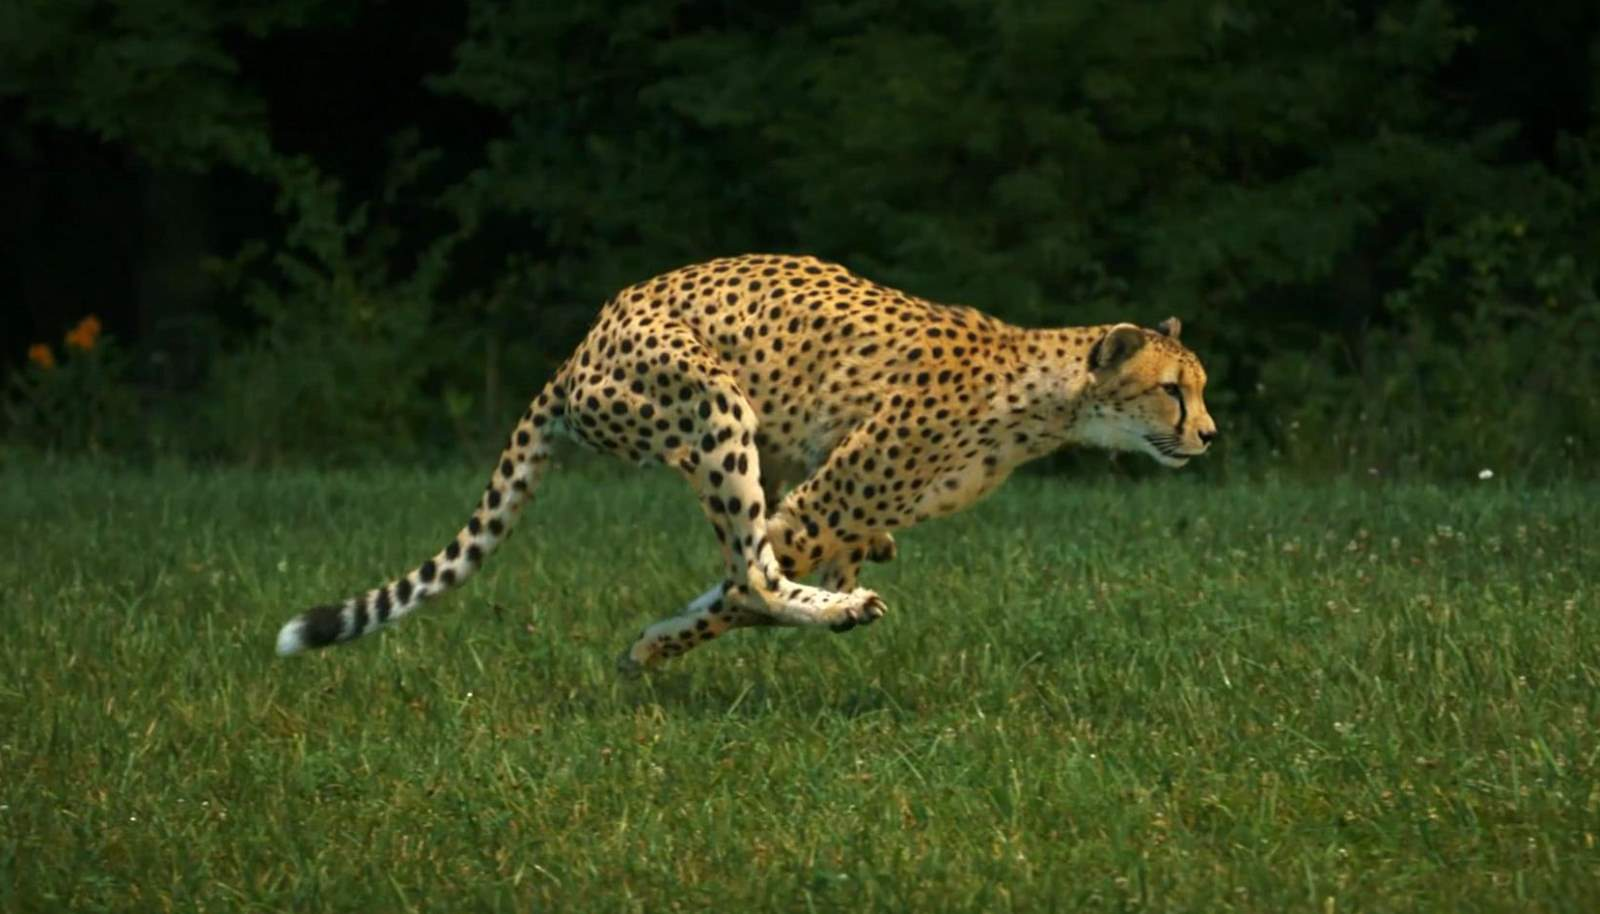 Fastest land animals: Sarah the cheetah, running